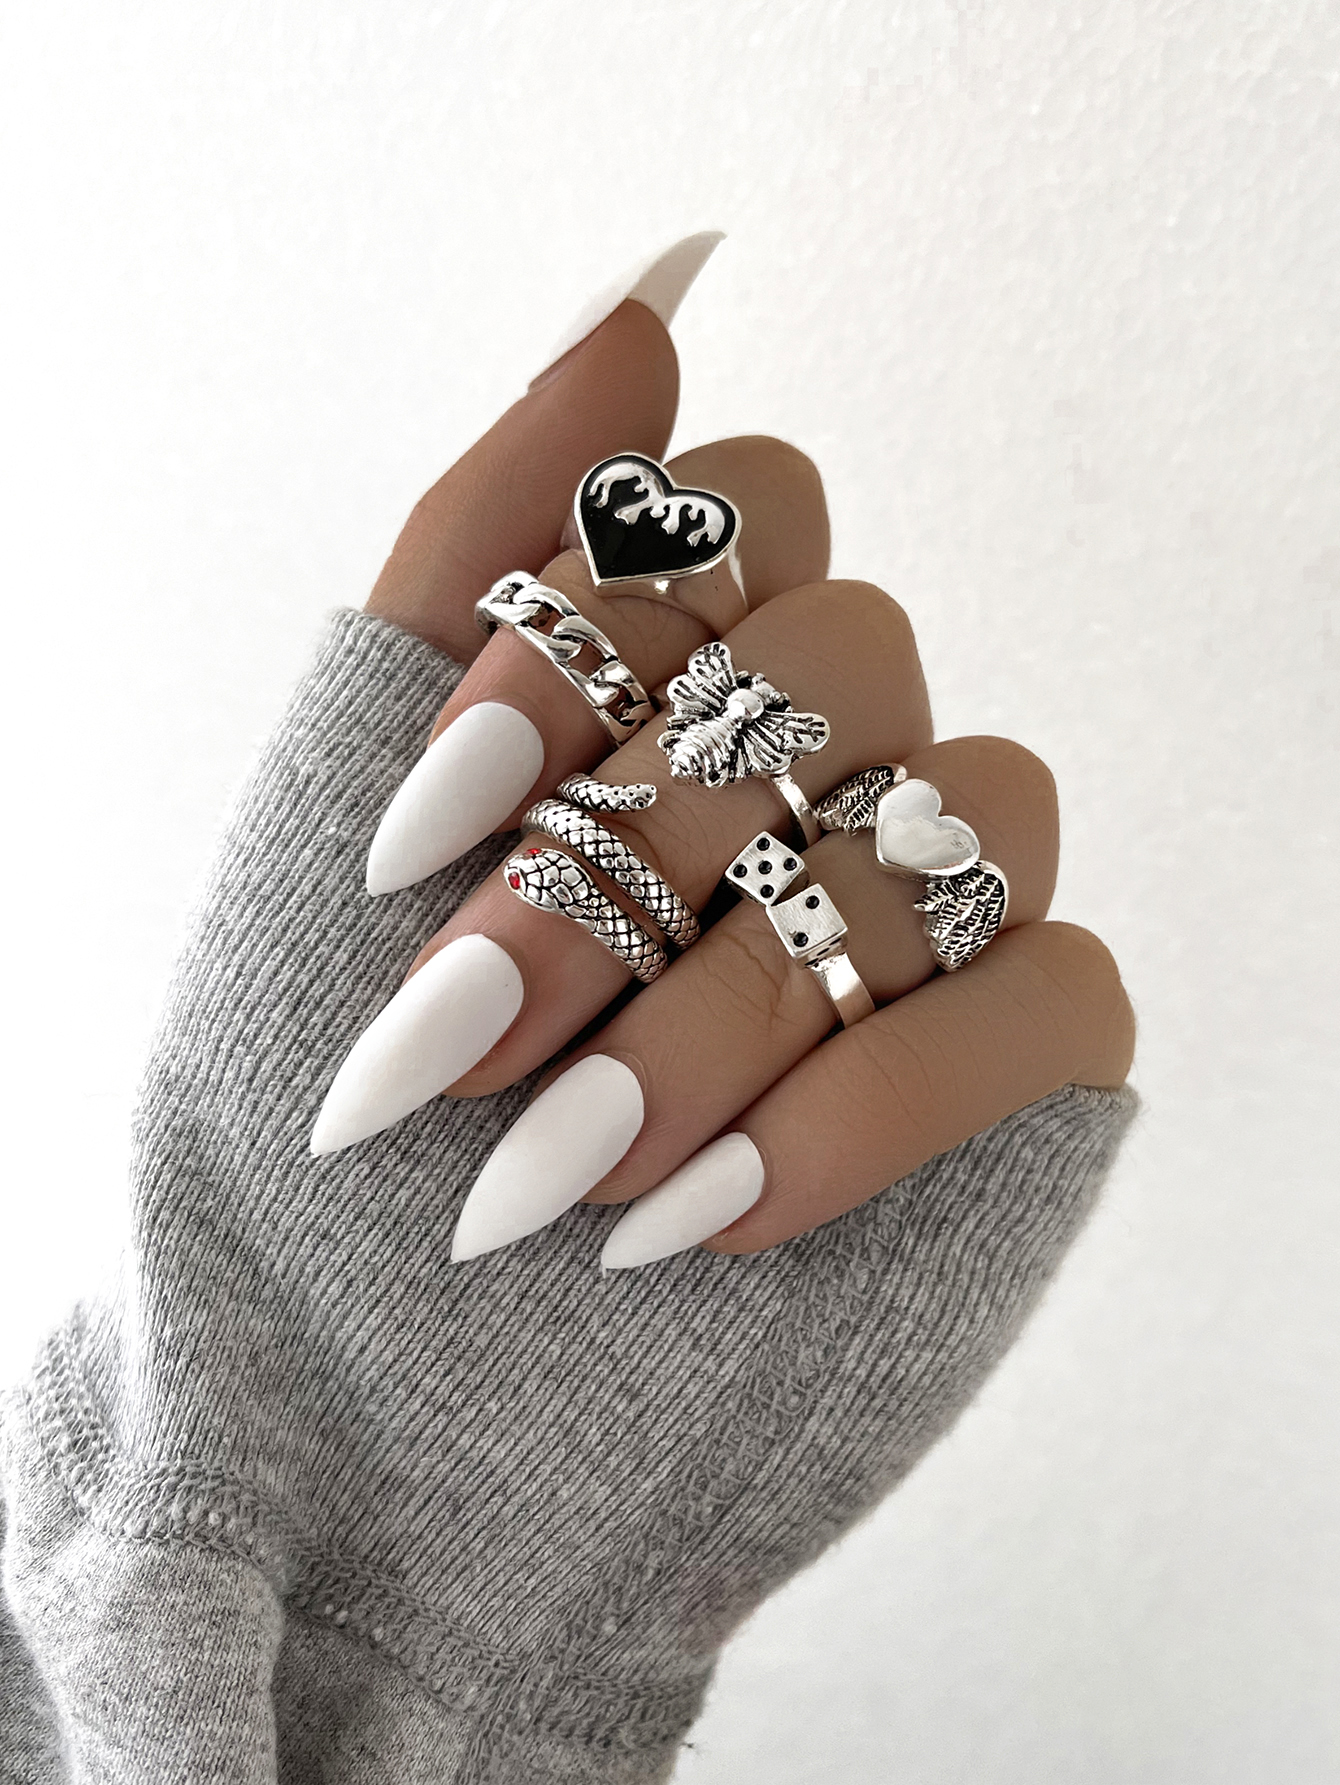 Stillgirl 6Pcs Punk Silver Color Flame Heart Rings for Women Goth Kpop Snake Bee Dice Animal Unisex Couple Fashion Jewelry Gift